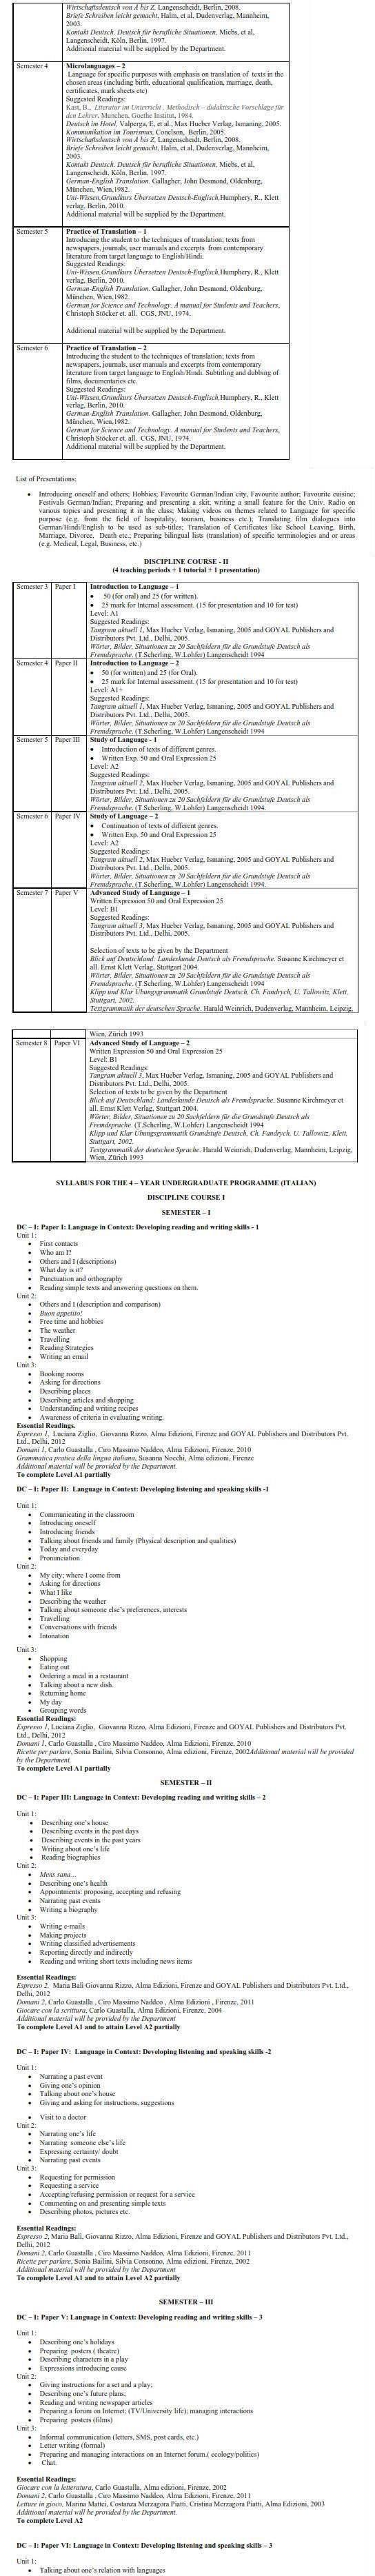 DU DC I, DC II and Applied Course Syllabus - Germanic & Romance Studies